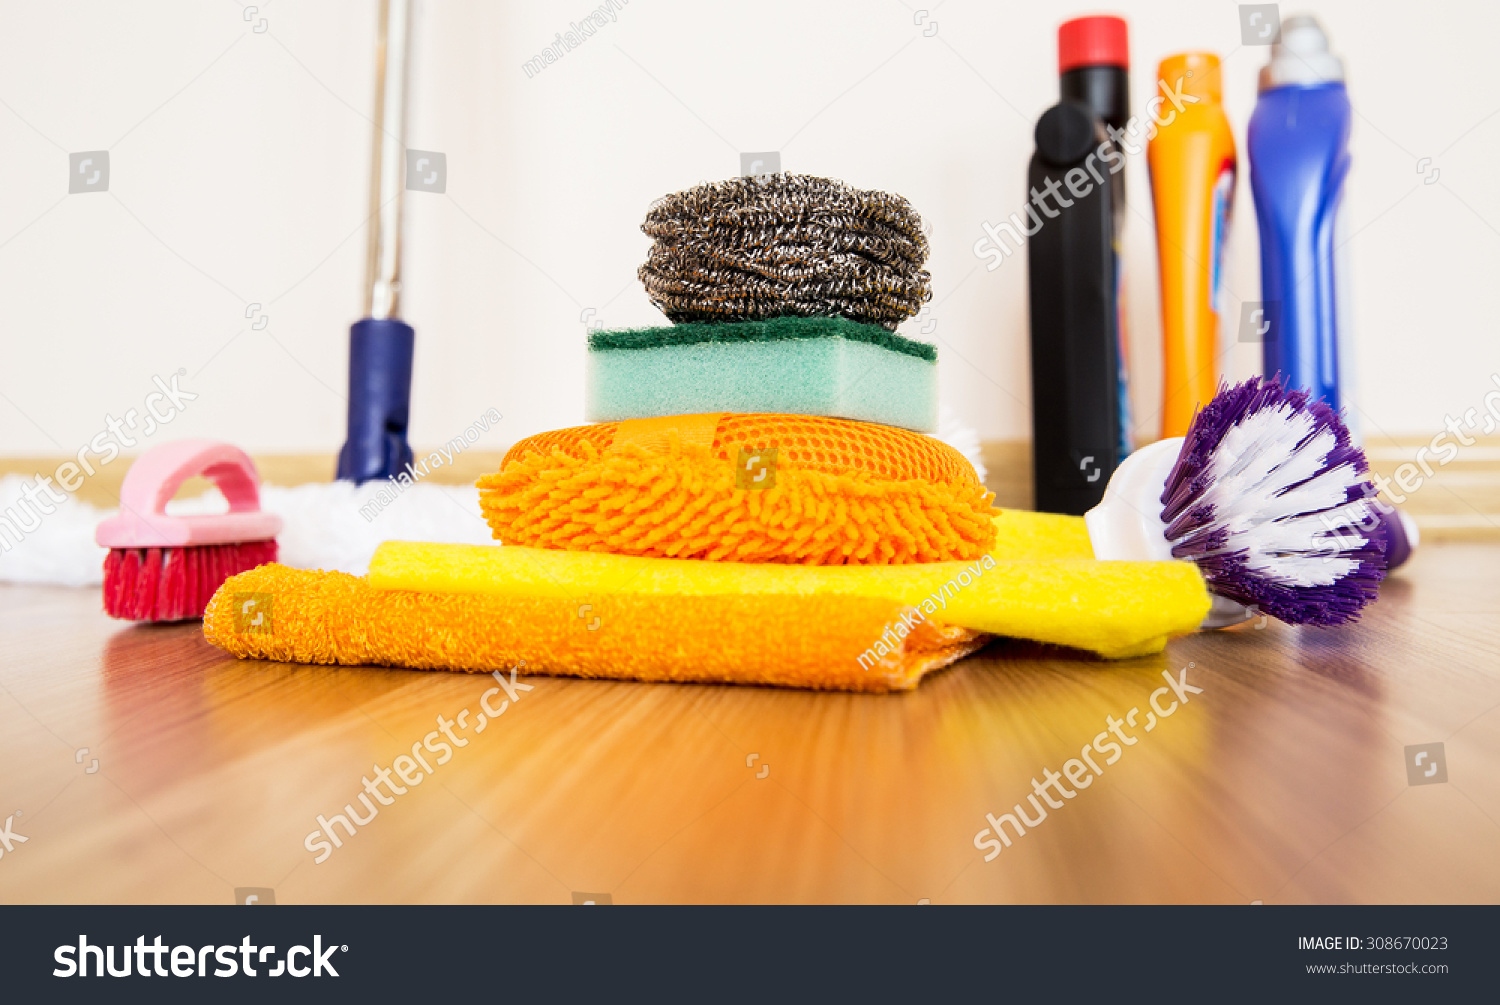 House Cleaning Supplies On Wooden Floor Stock Photo